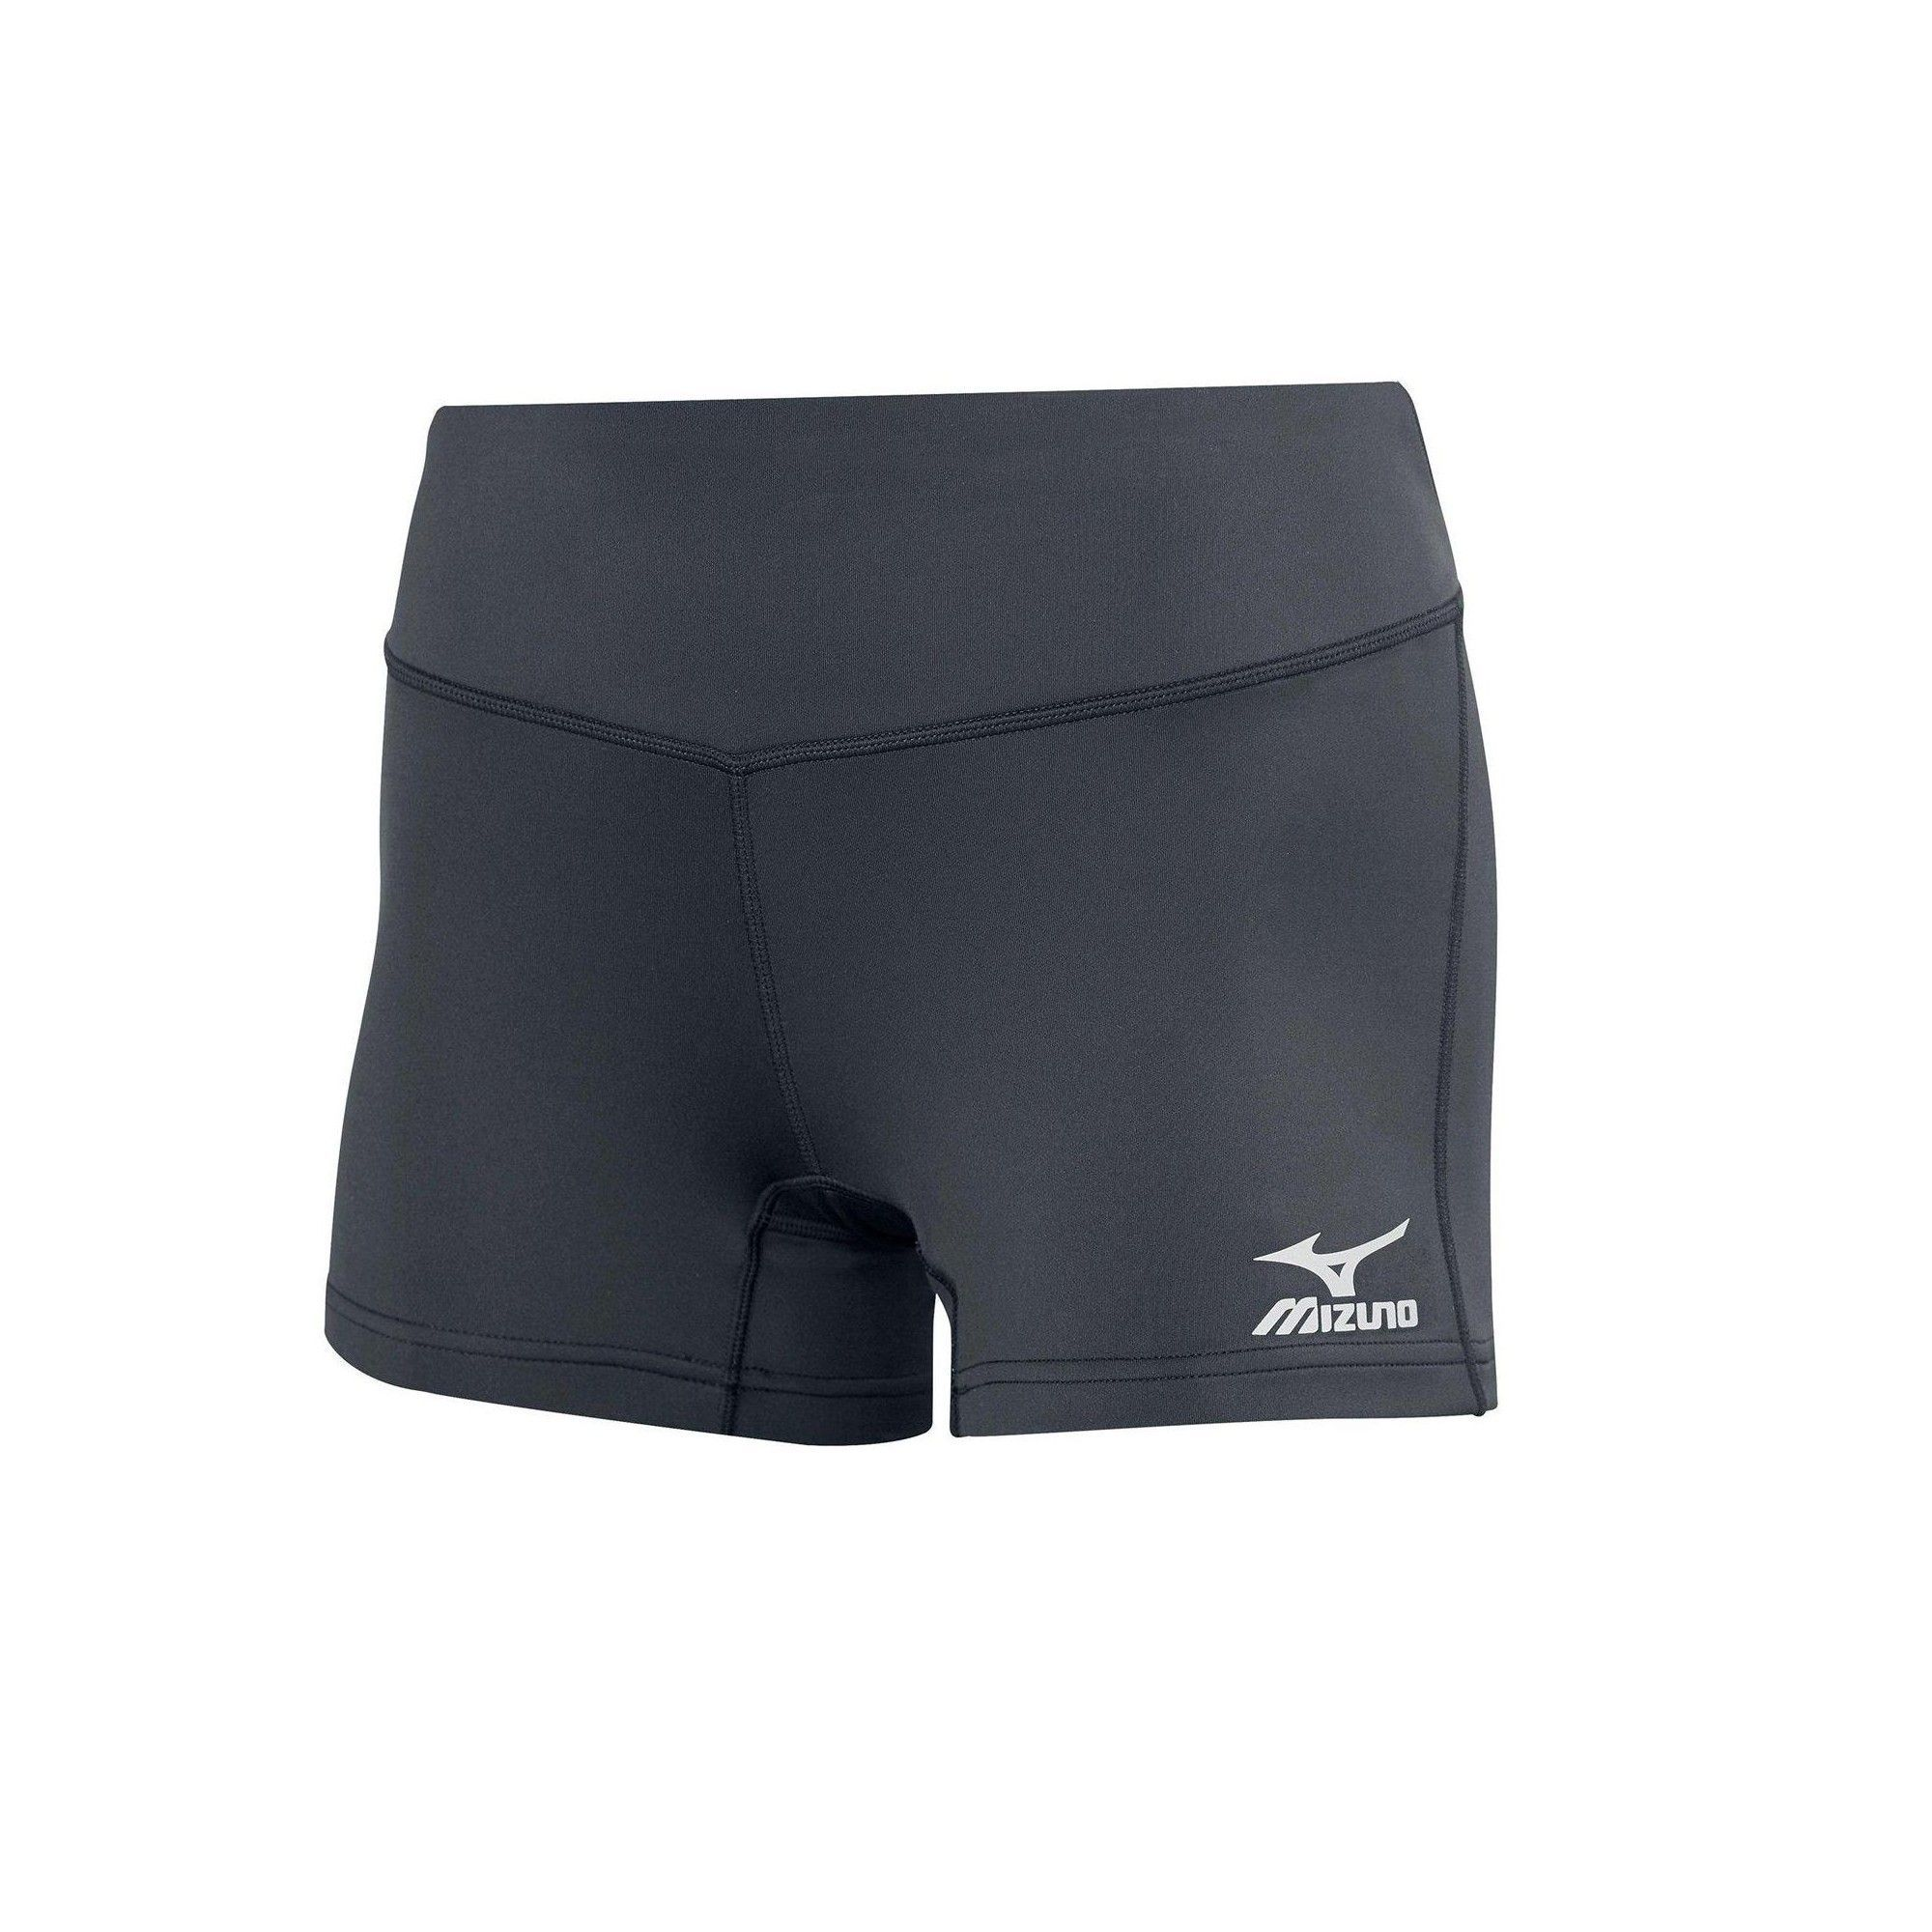 Mizuno Womens Volleyball Apparel Victory 3 5 Inseam Volleyball Shorts 440656 Apparel In 2020 Volleyball Shorts Volleyball Outfits Women Volleyball